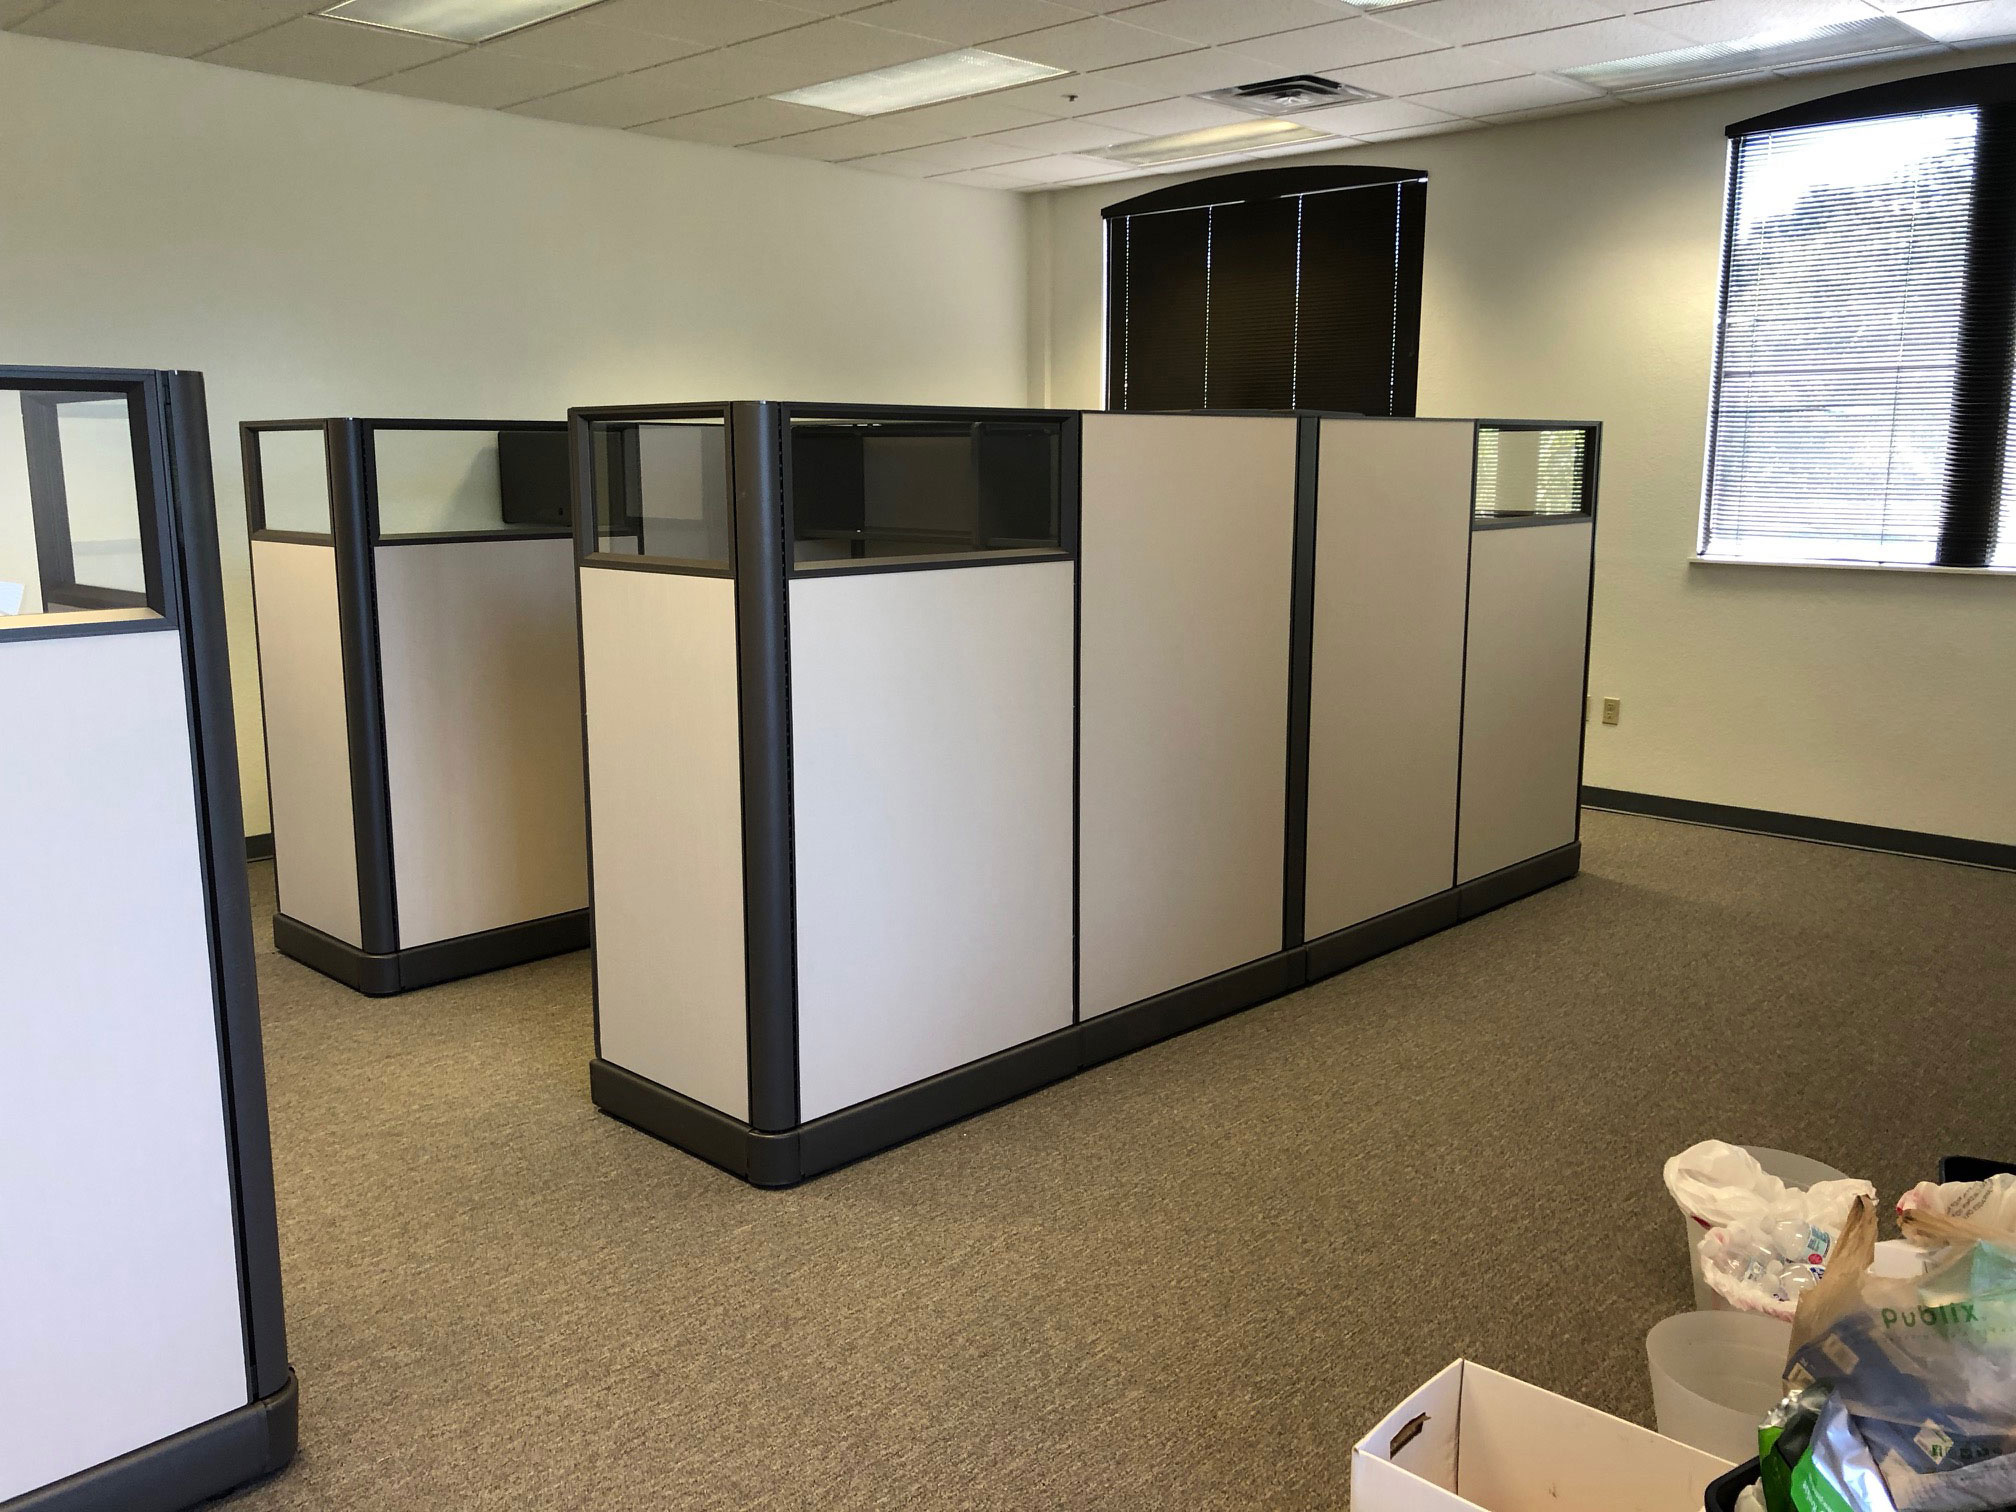 office-cubicles-for-sale-in-destin-florida-2.jpg